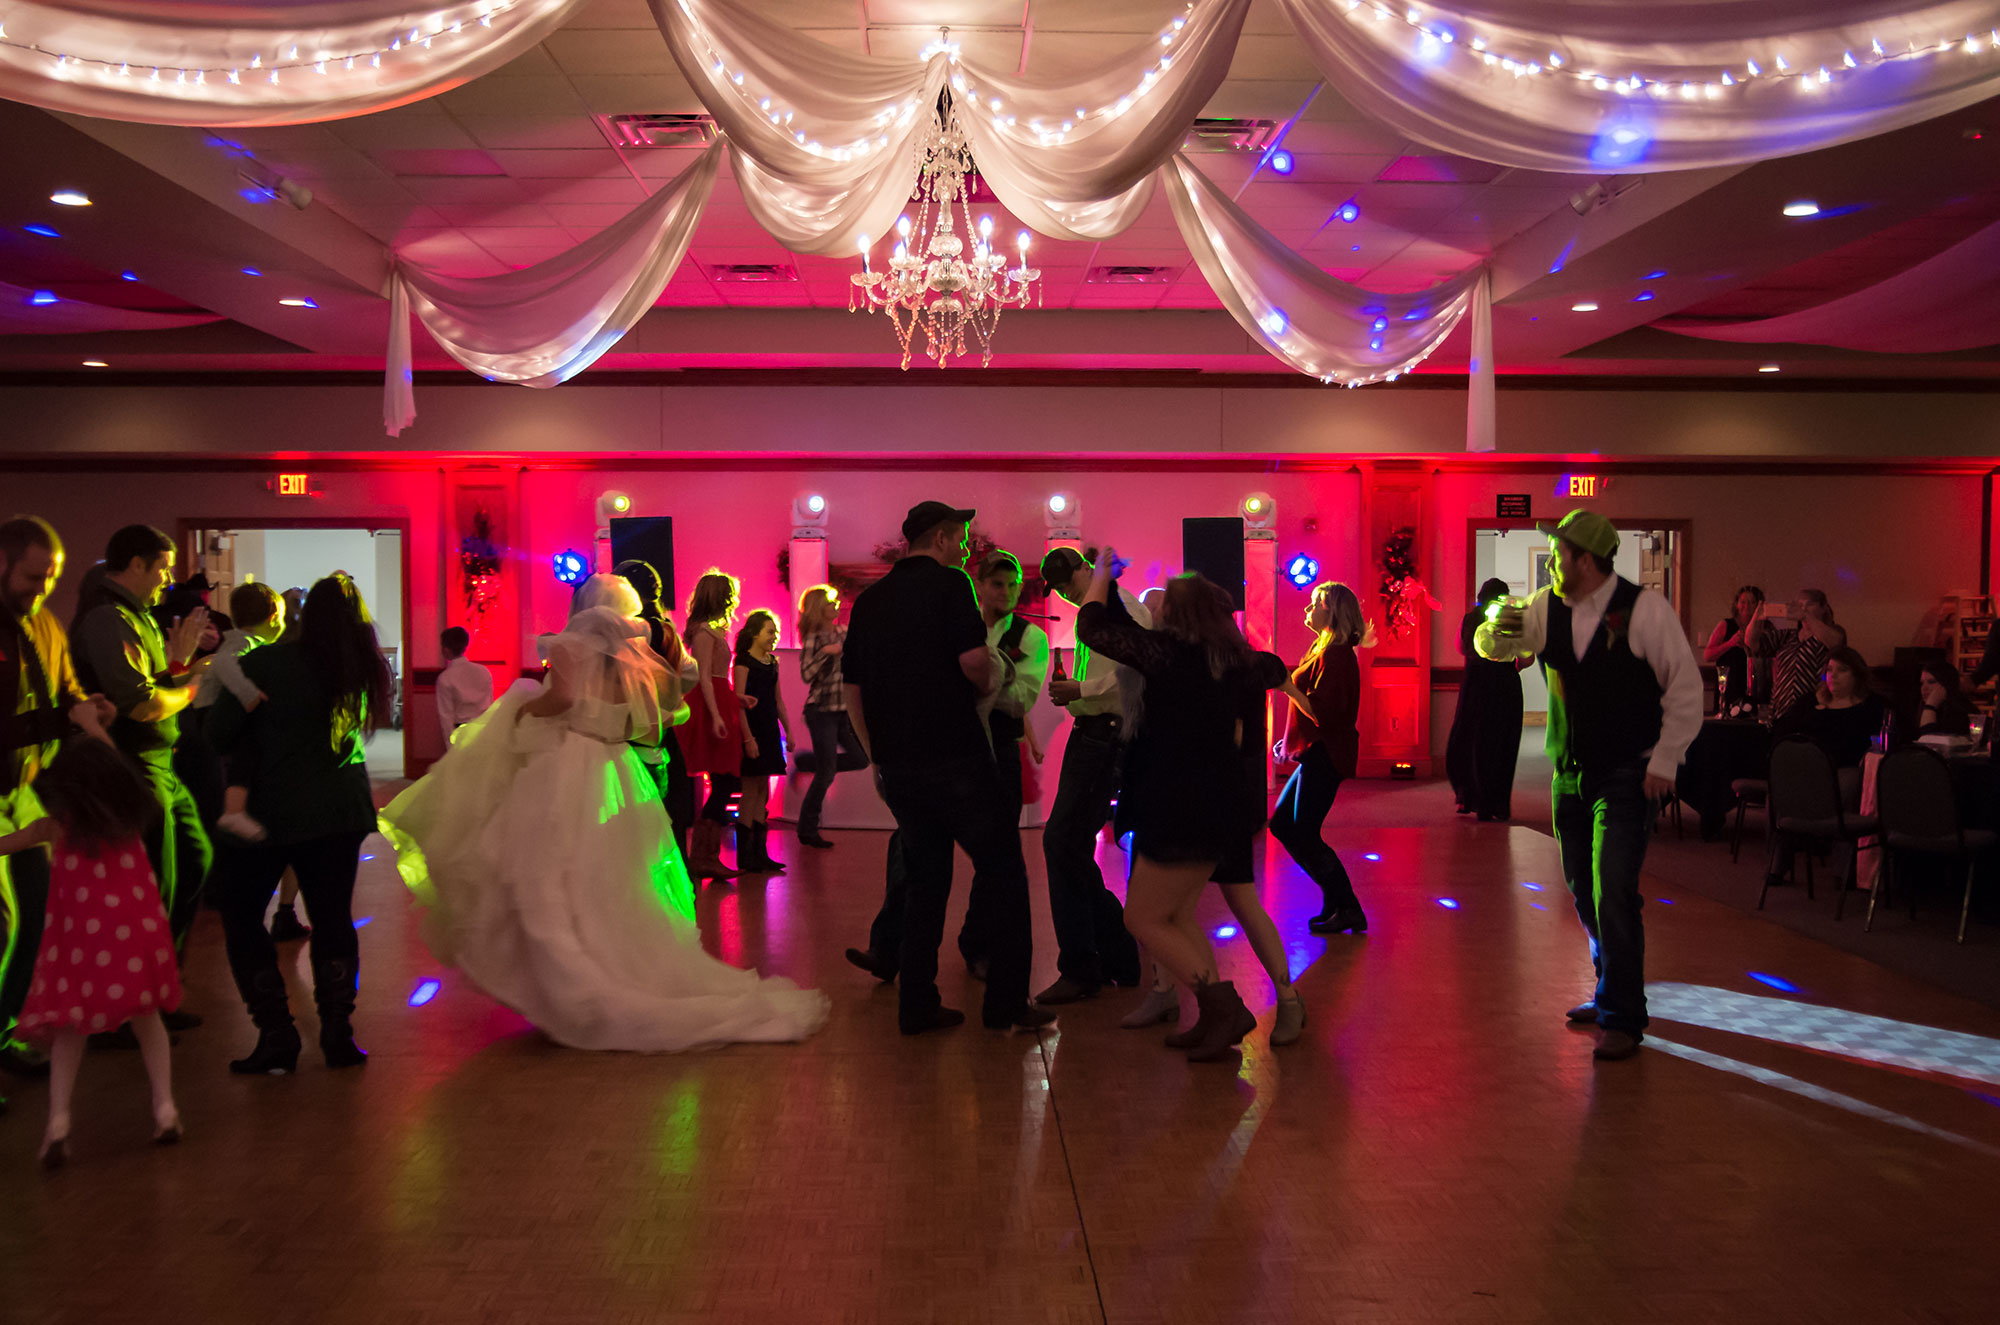 Wedding Dance - Party Hits Music and Light Show - Wisconsin DJ Dance Weddings Events